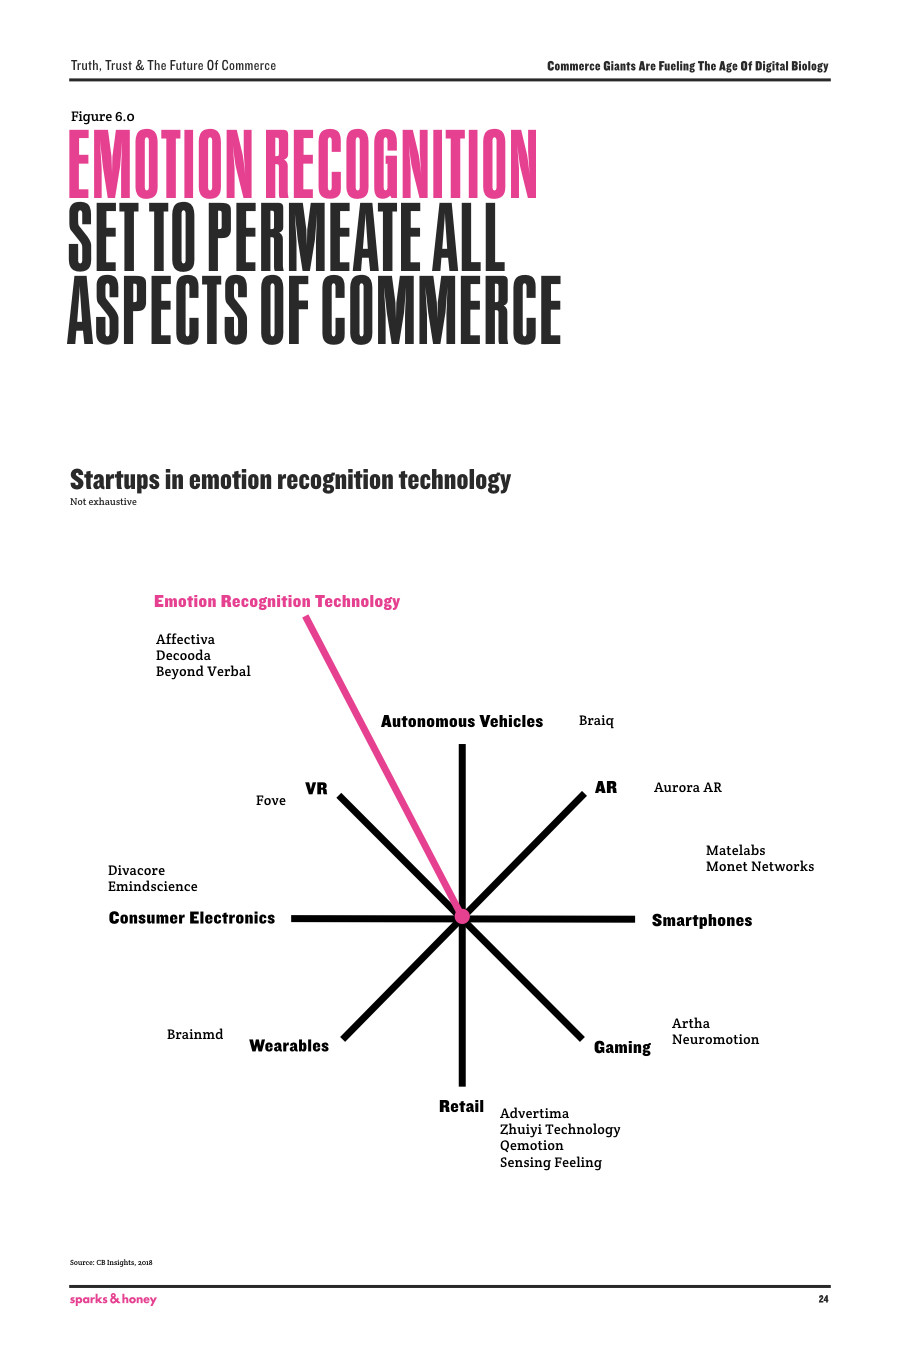 Commerce is on the cusp of radical change. Is your